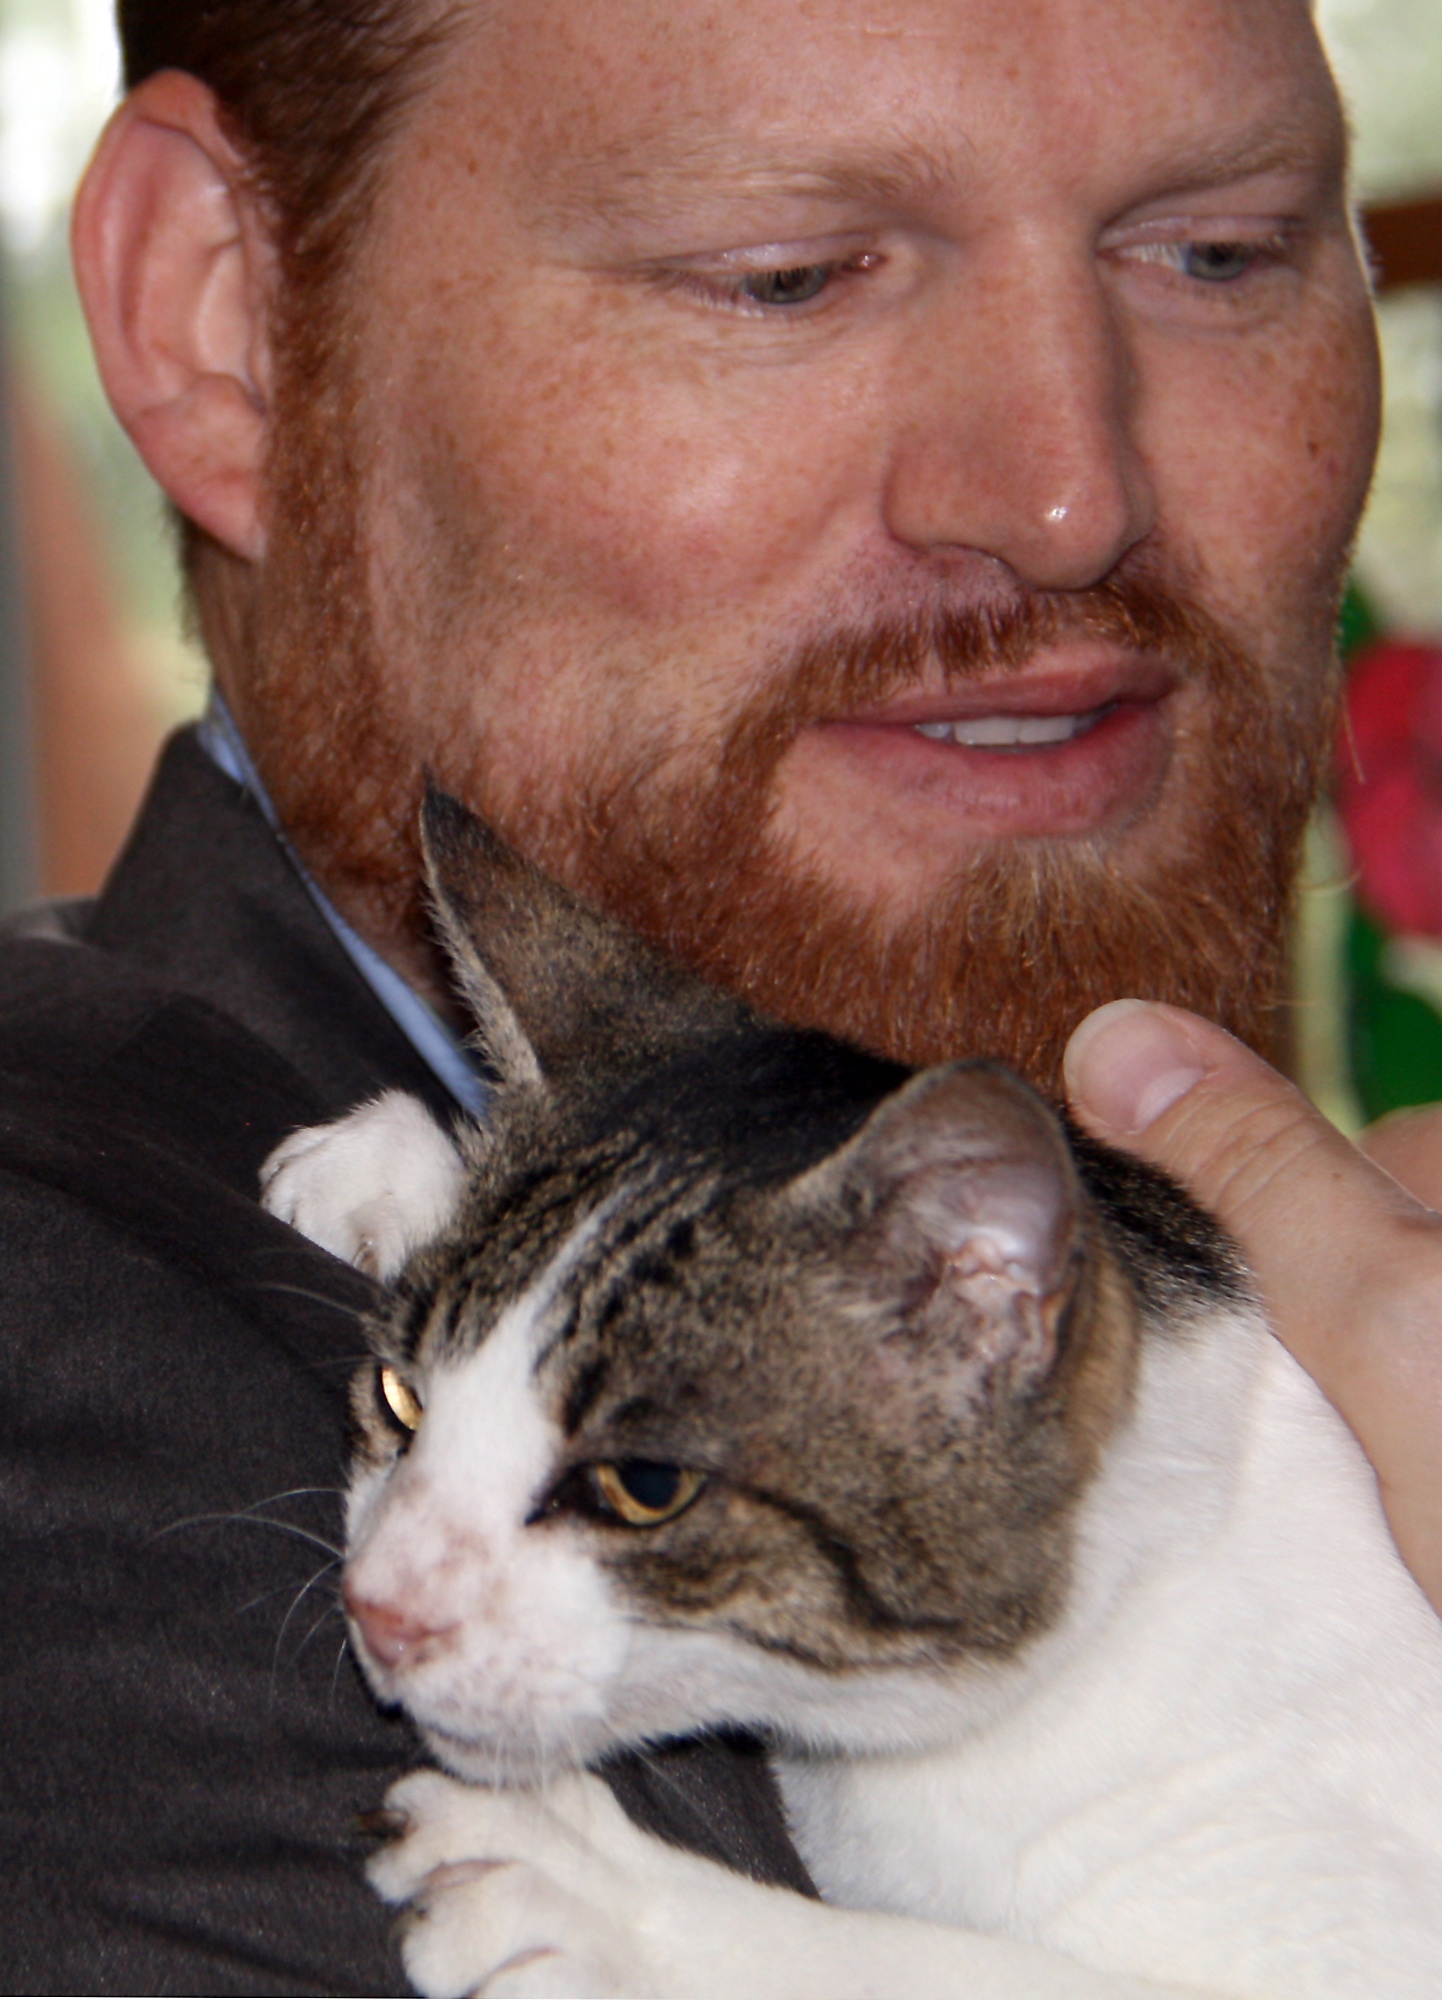 James Raasch and his longtime companion, Odie, are reunited after the cat had been missing for a year.